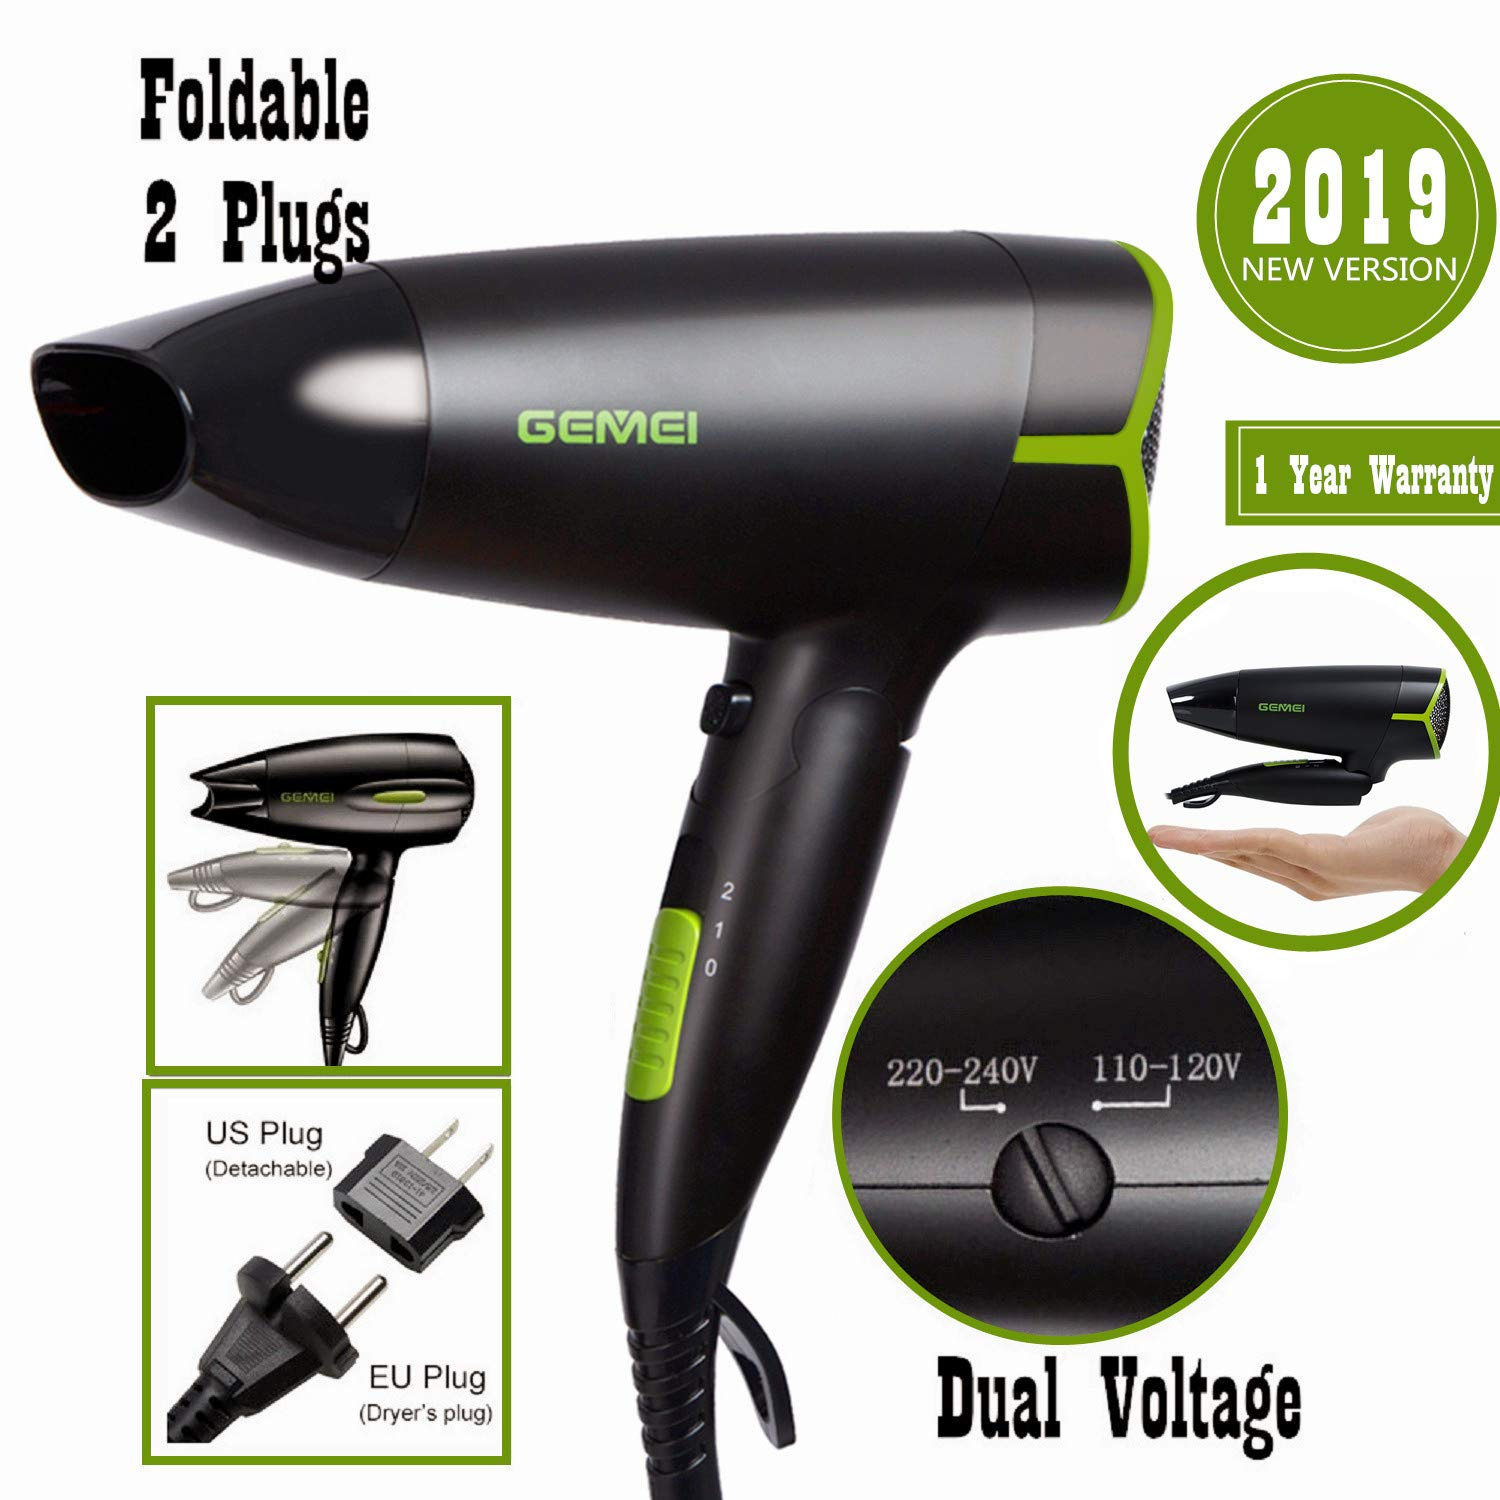 Folding Blow Dryer for Travel,Dual Voltage Hair Dryer,1200 to 1600W Professional Compact Small Negative Ionic Lightweight Worldwide 100-240V Hair Dryer,Cool Shot Button,Mini 9x10 Inch,Gifts for Women